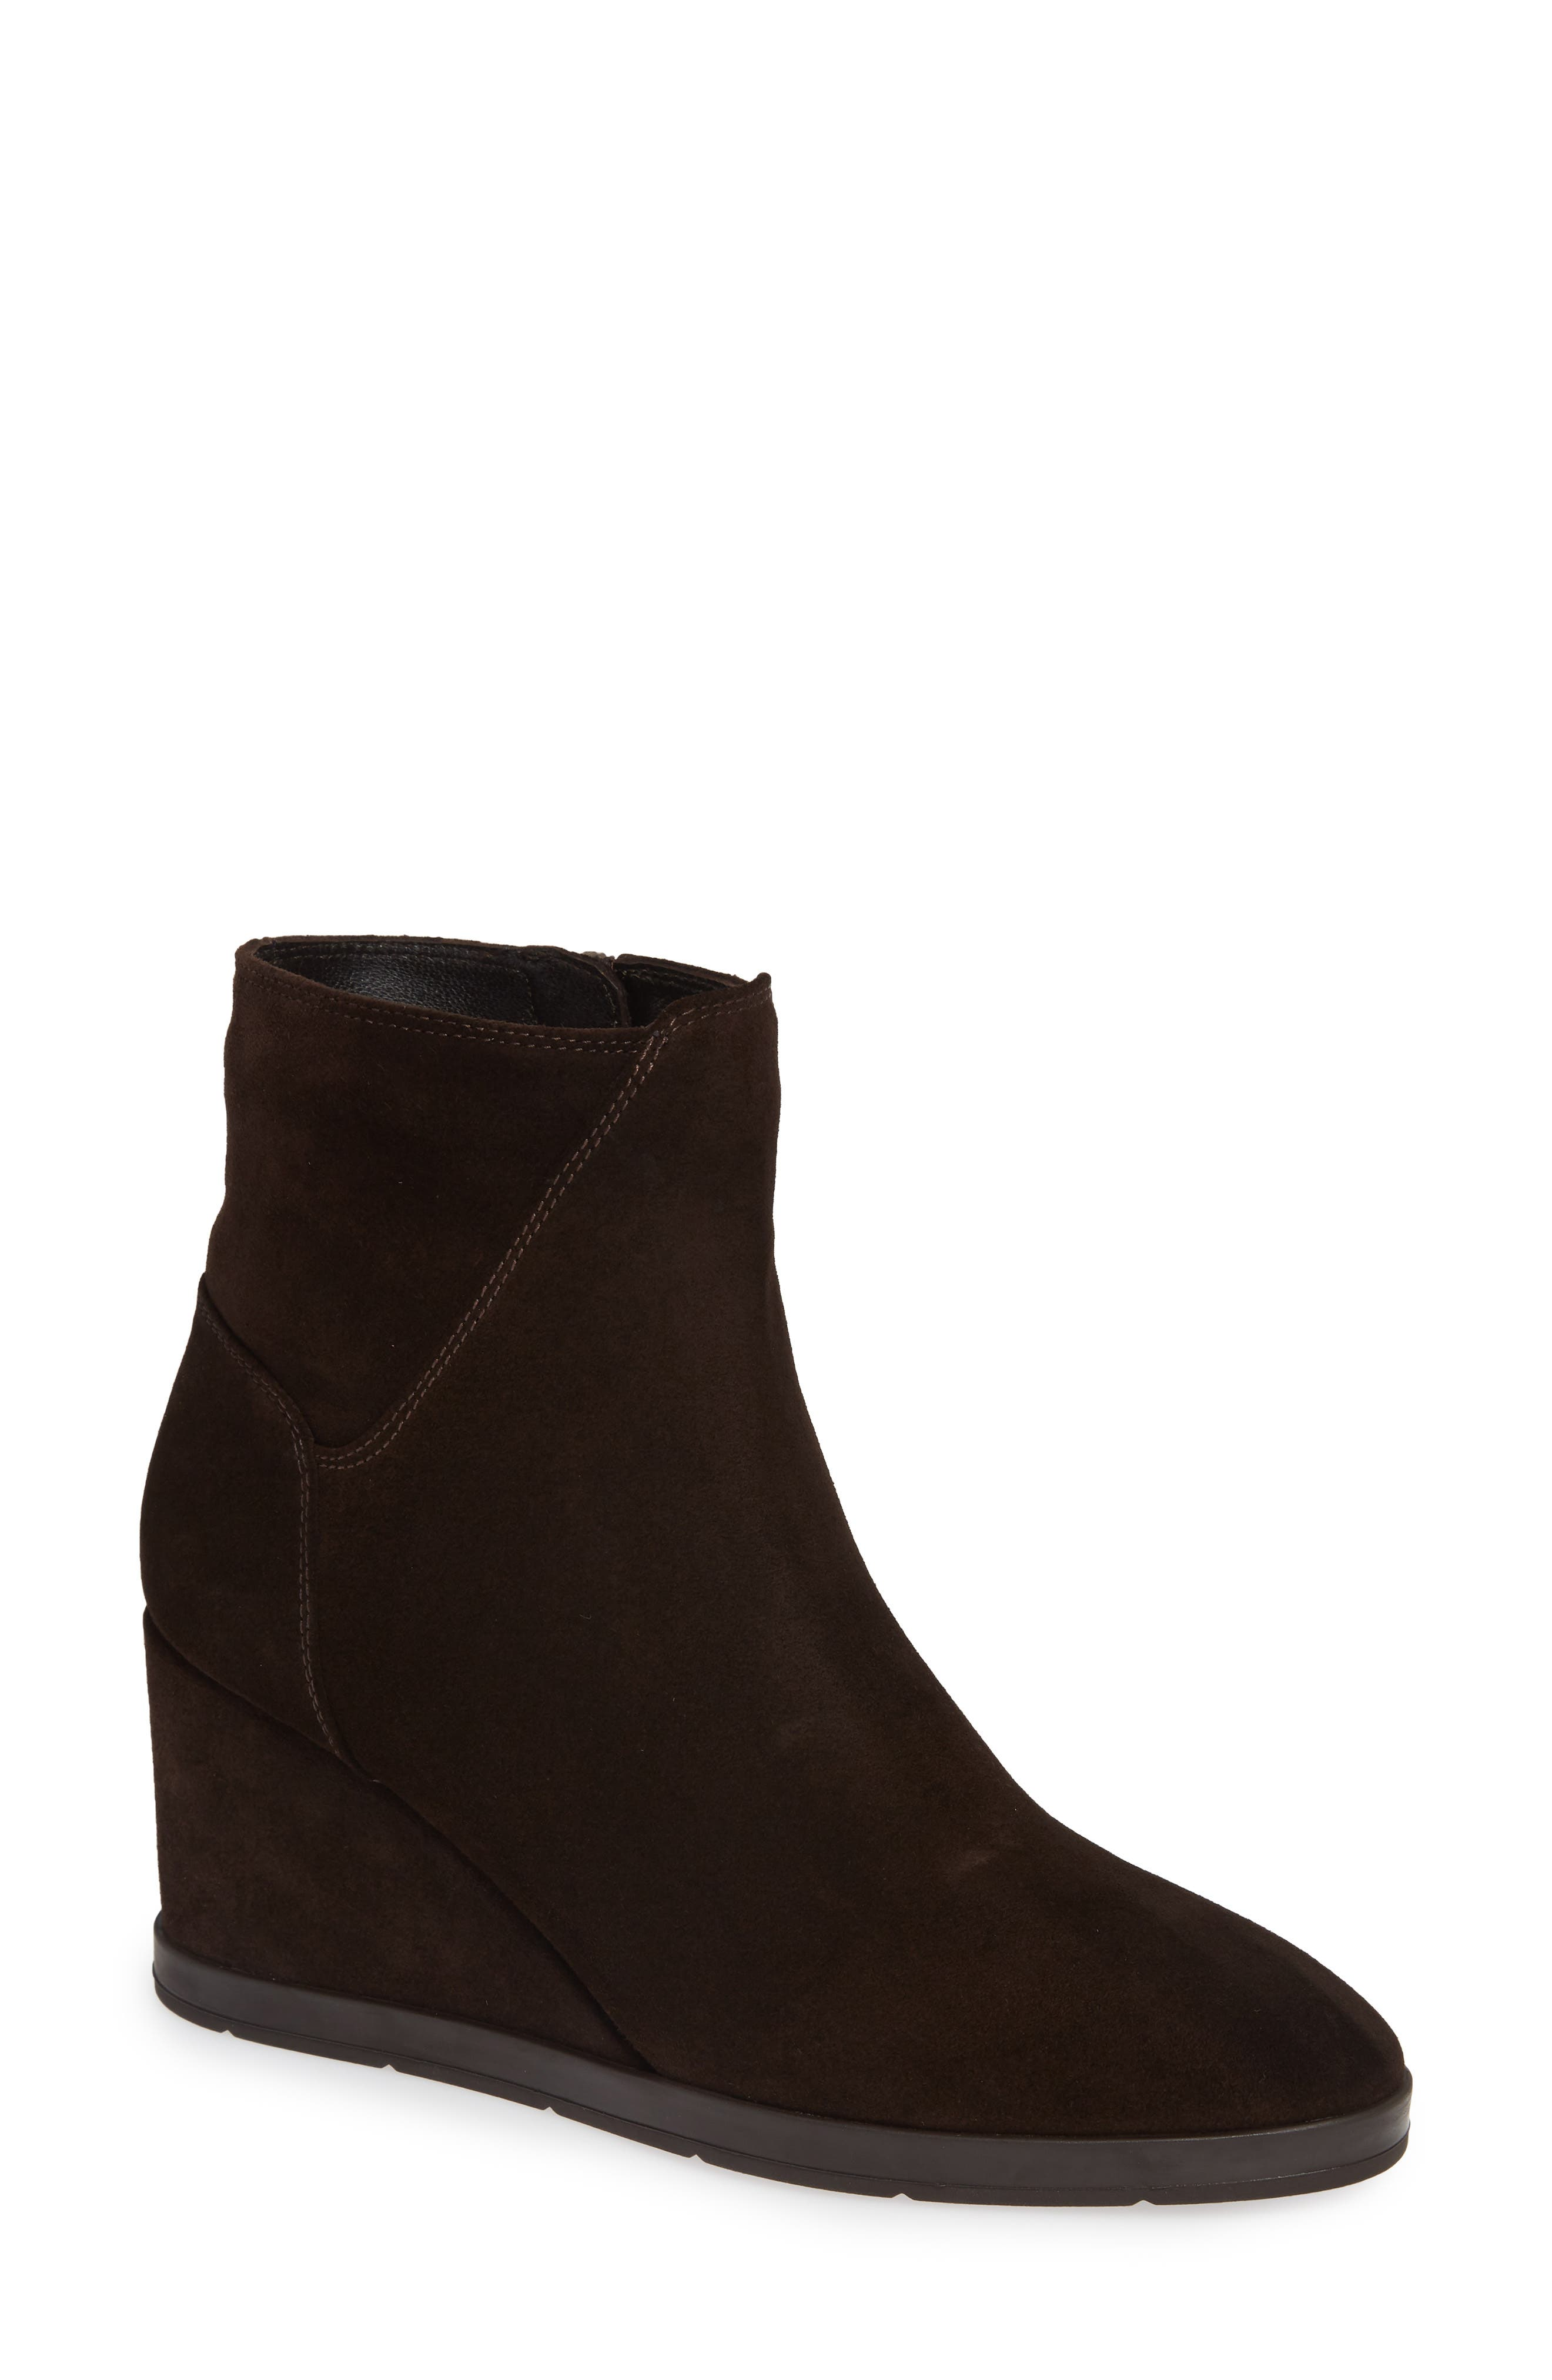 AQUATALIA Women'S Judy Weatherproof Suede Wedge Heel Booties in Espresso